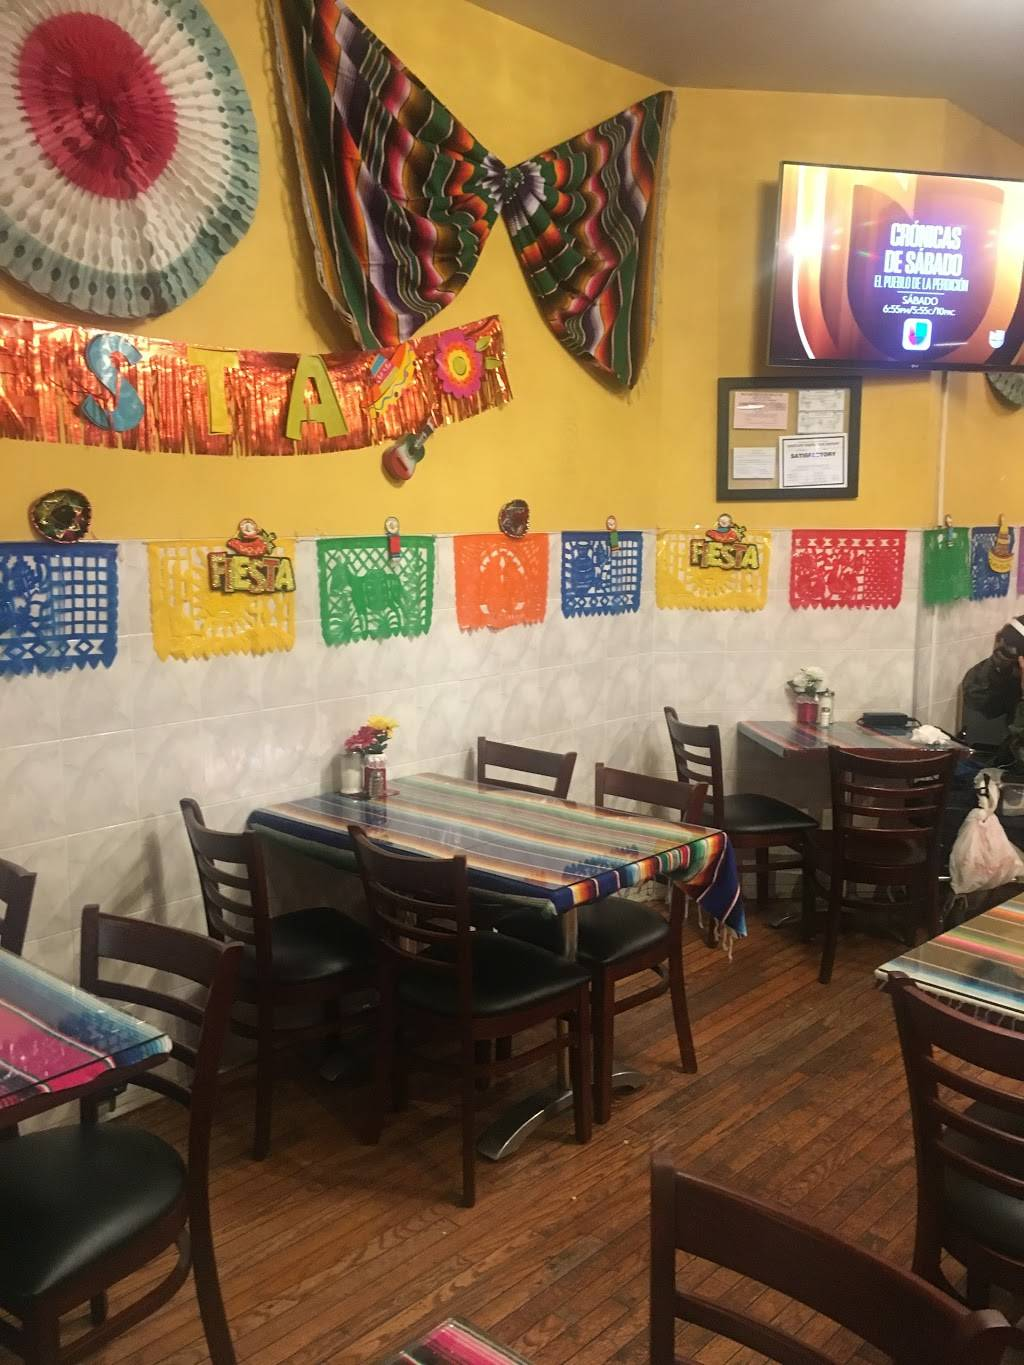 Sabor A Veracruz Restaurant | restaurant | 6415 Bergenline Ave, West New York, NJ 07093, USA | 2018687855 OR +1 201-868-7855